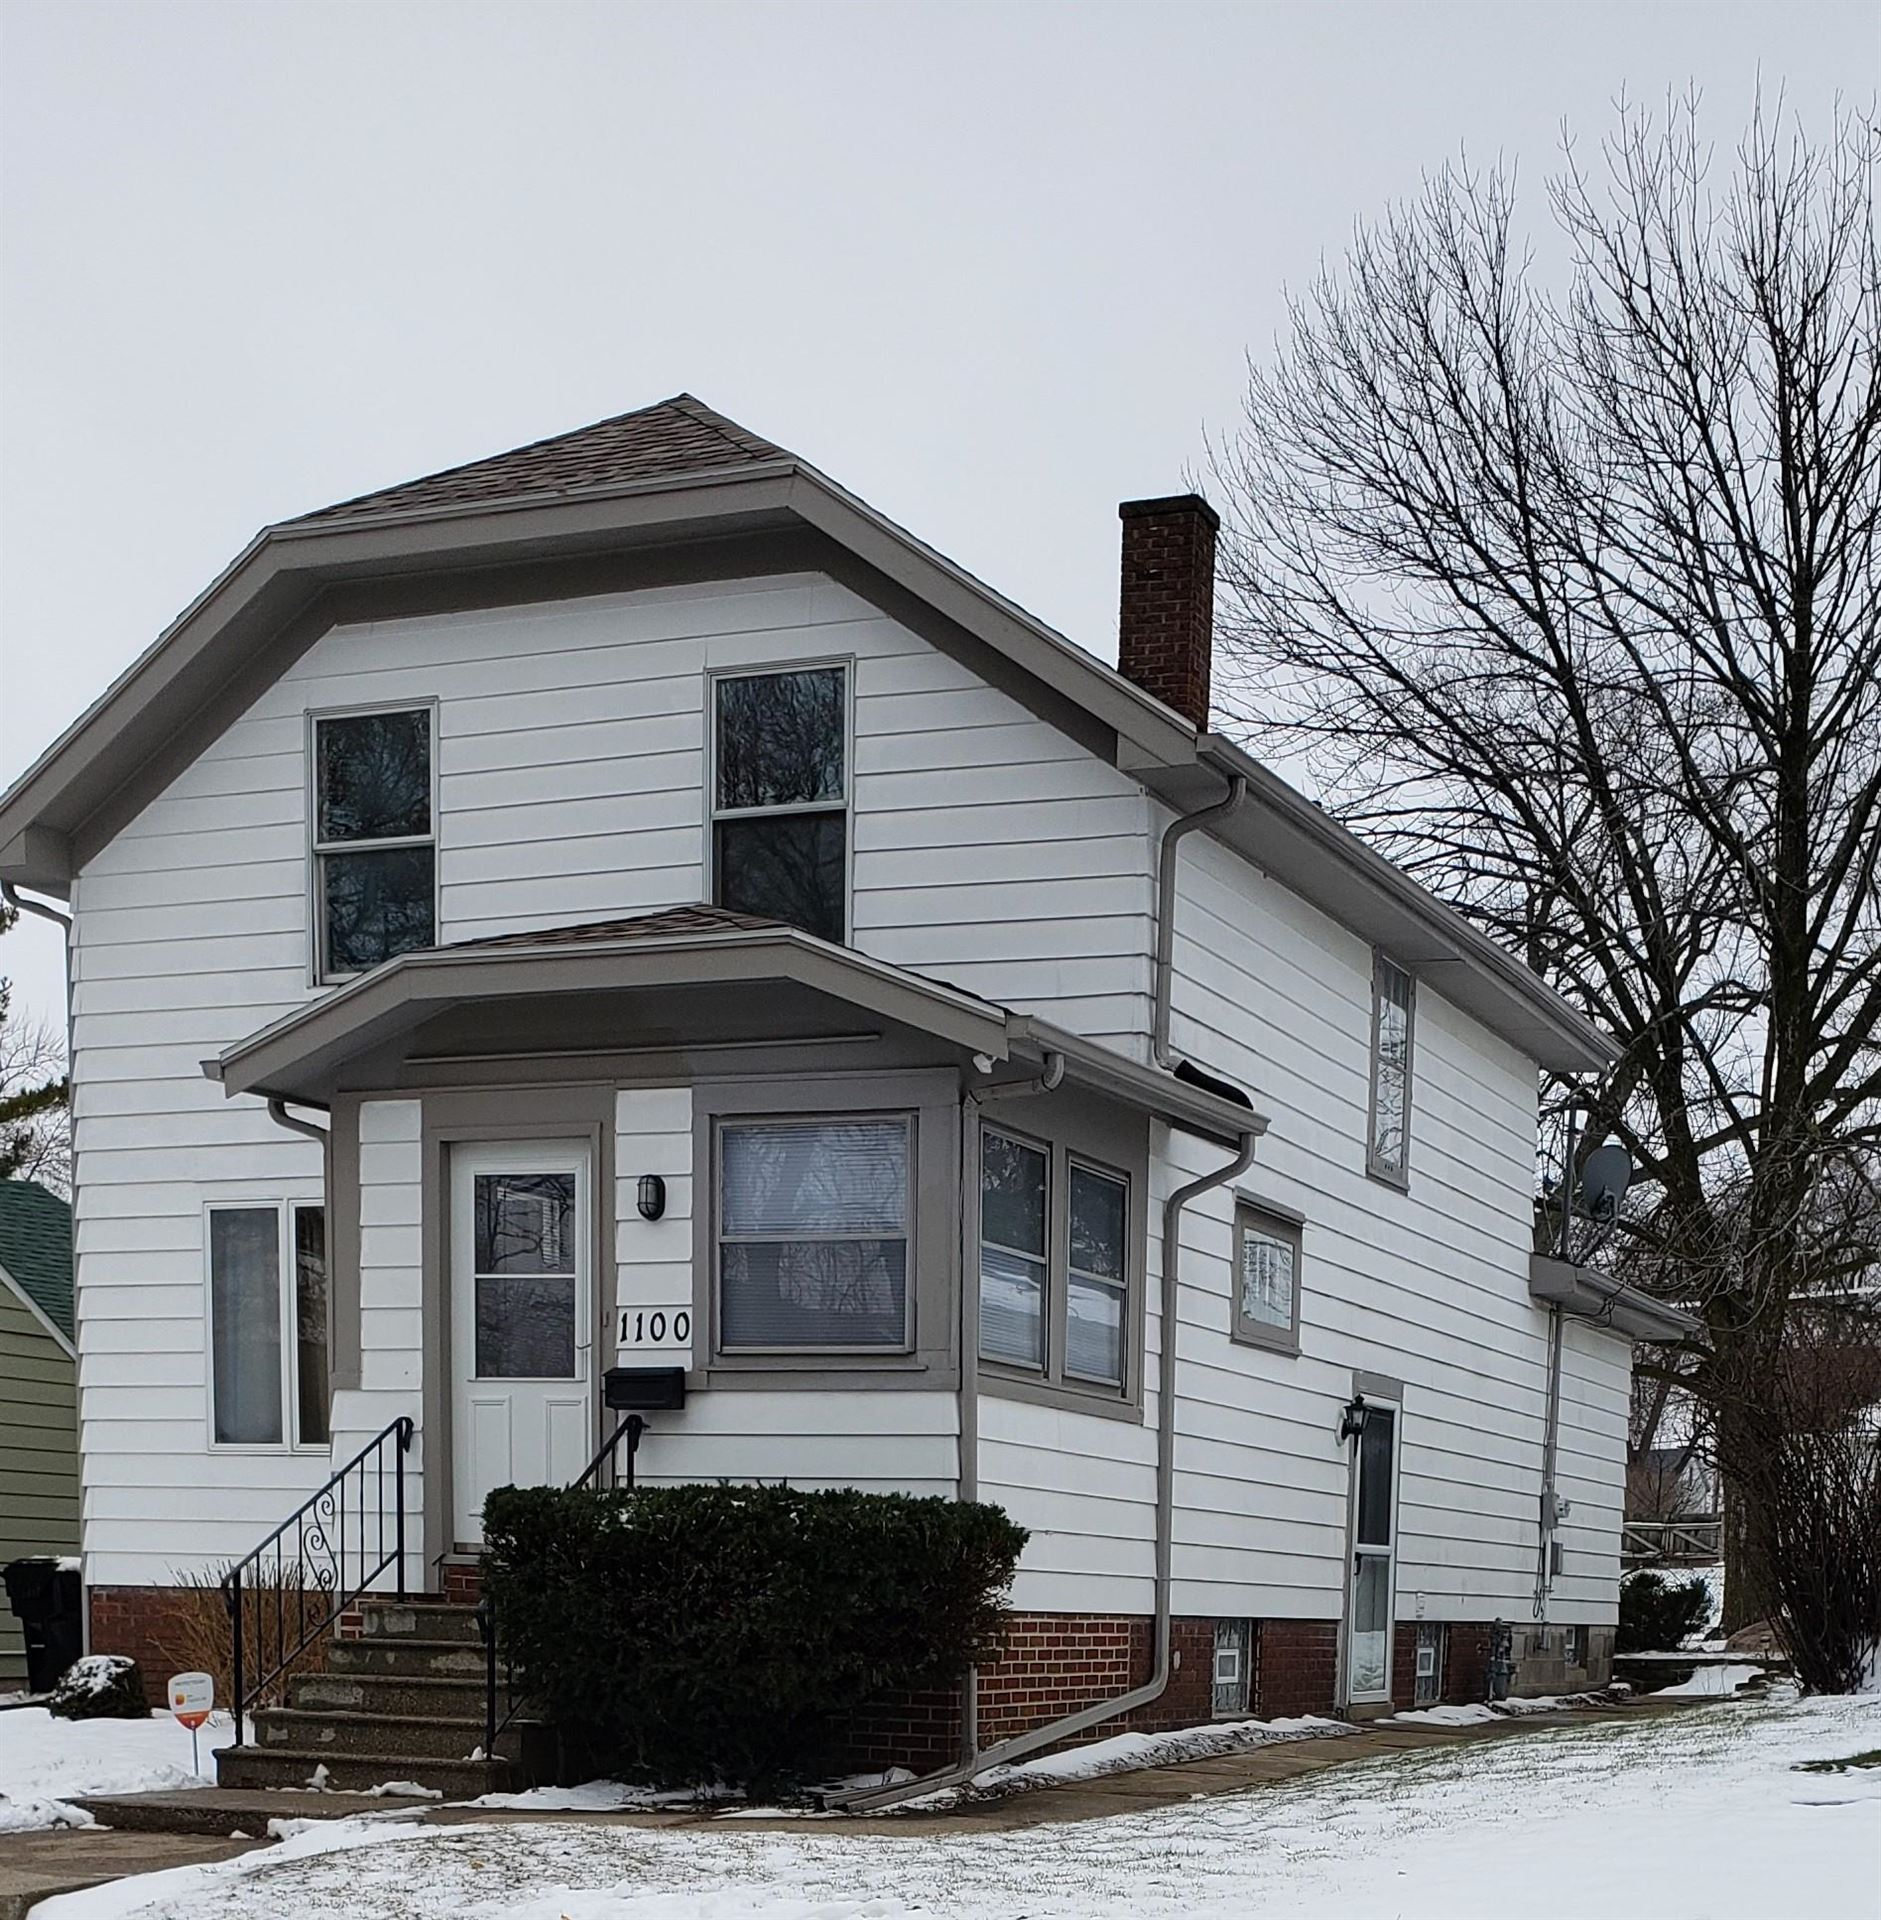 1100 Perry Ave, Racine, WI 53406 - #: 1673350